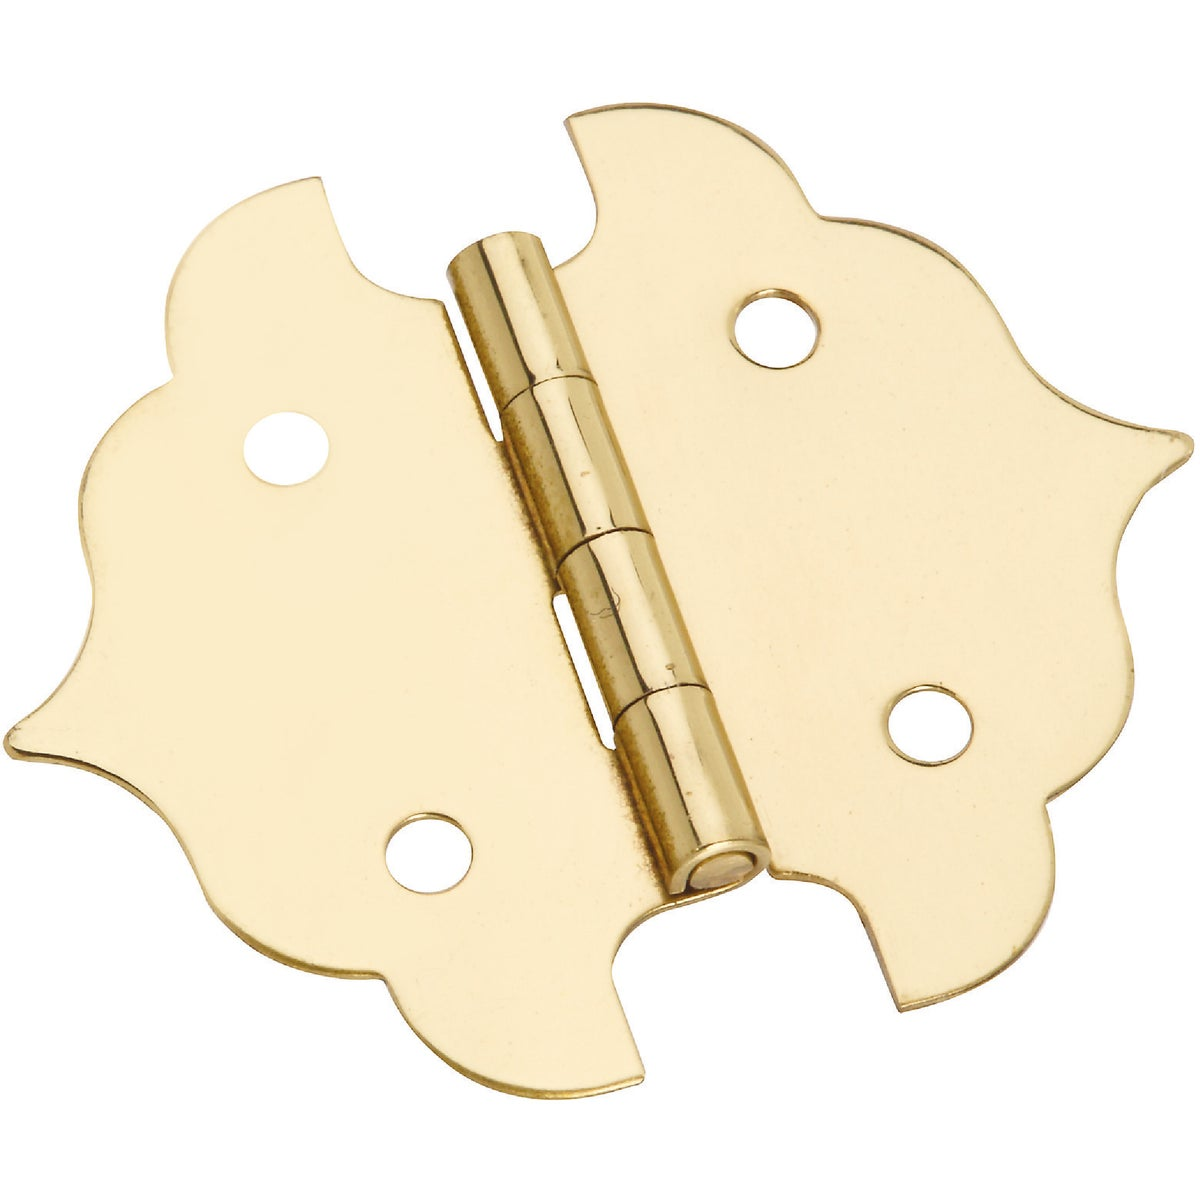 AB DECORATIVE HINGE - N211813 by National Mfg Co